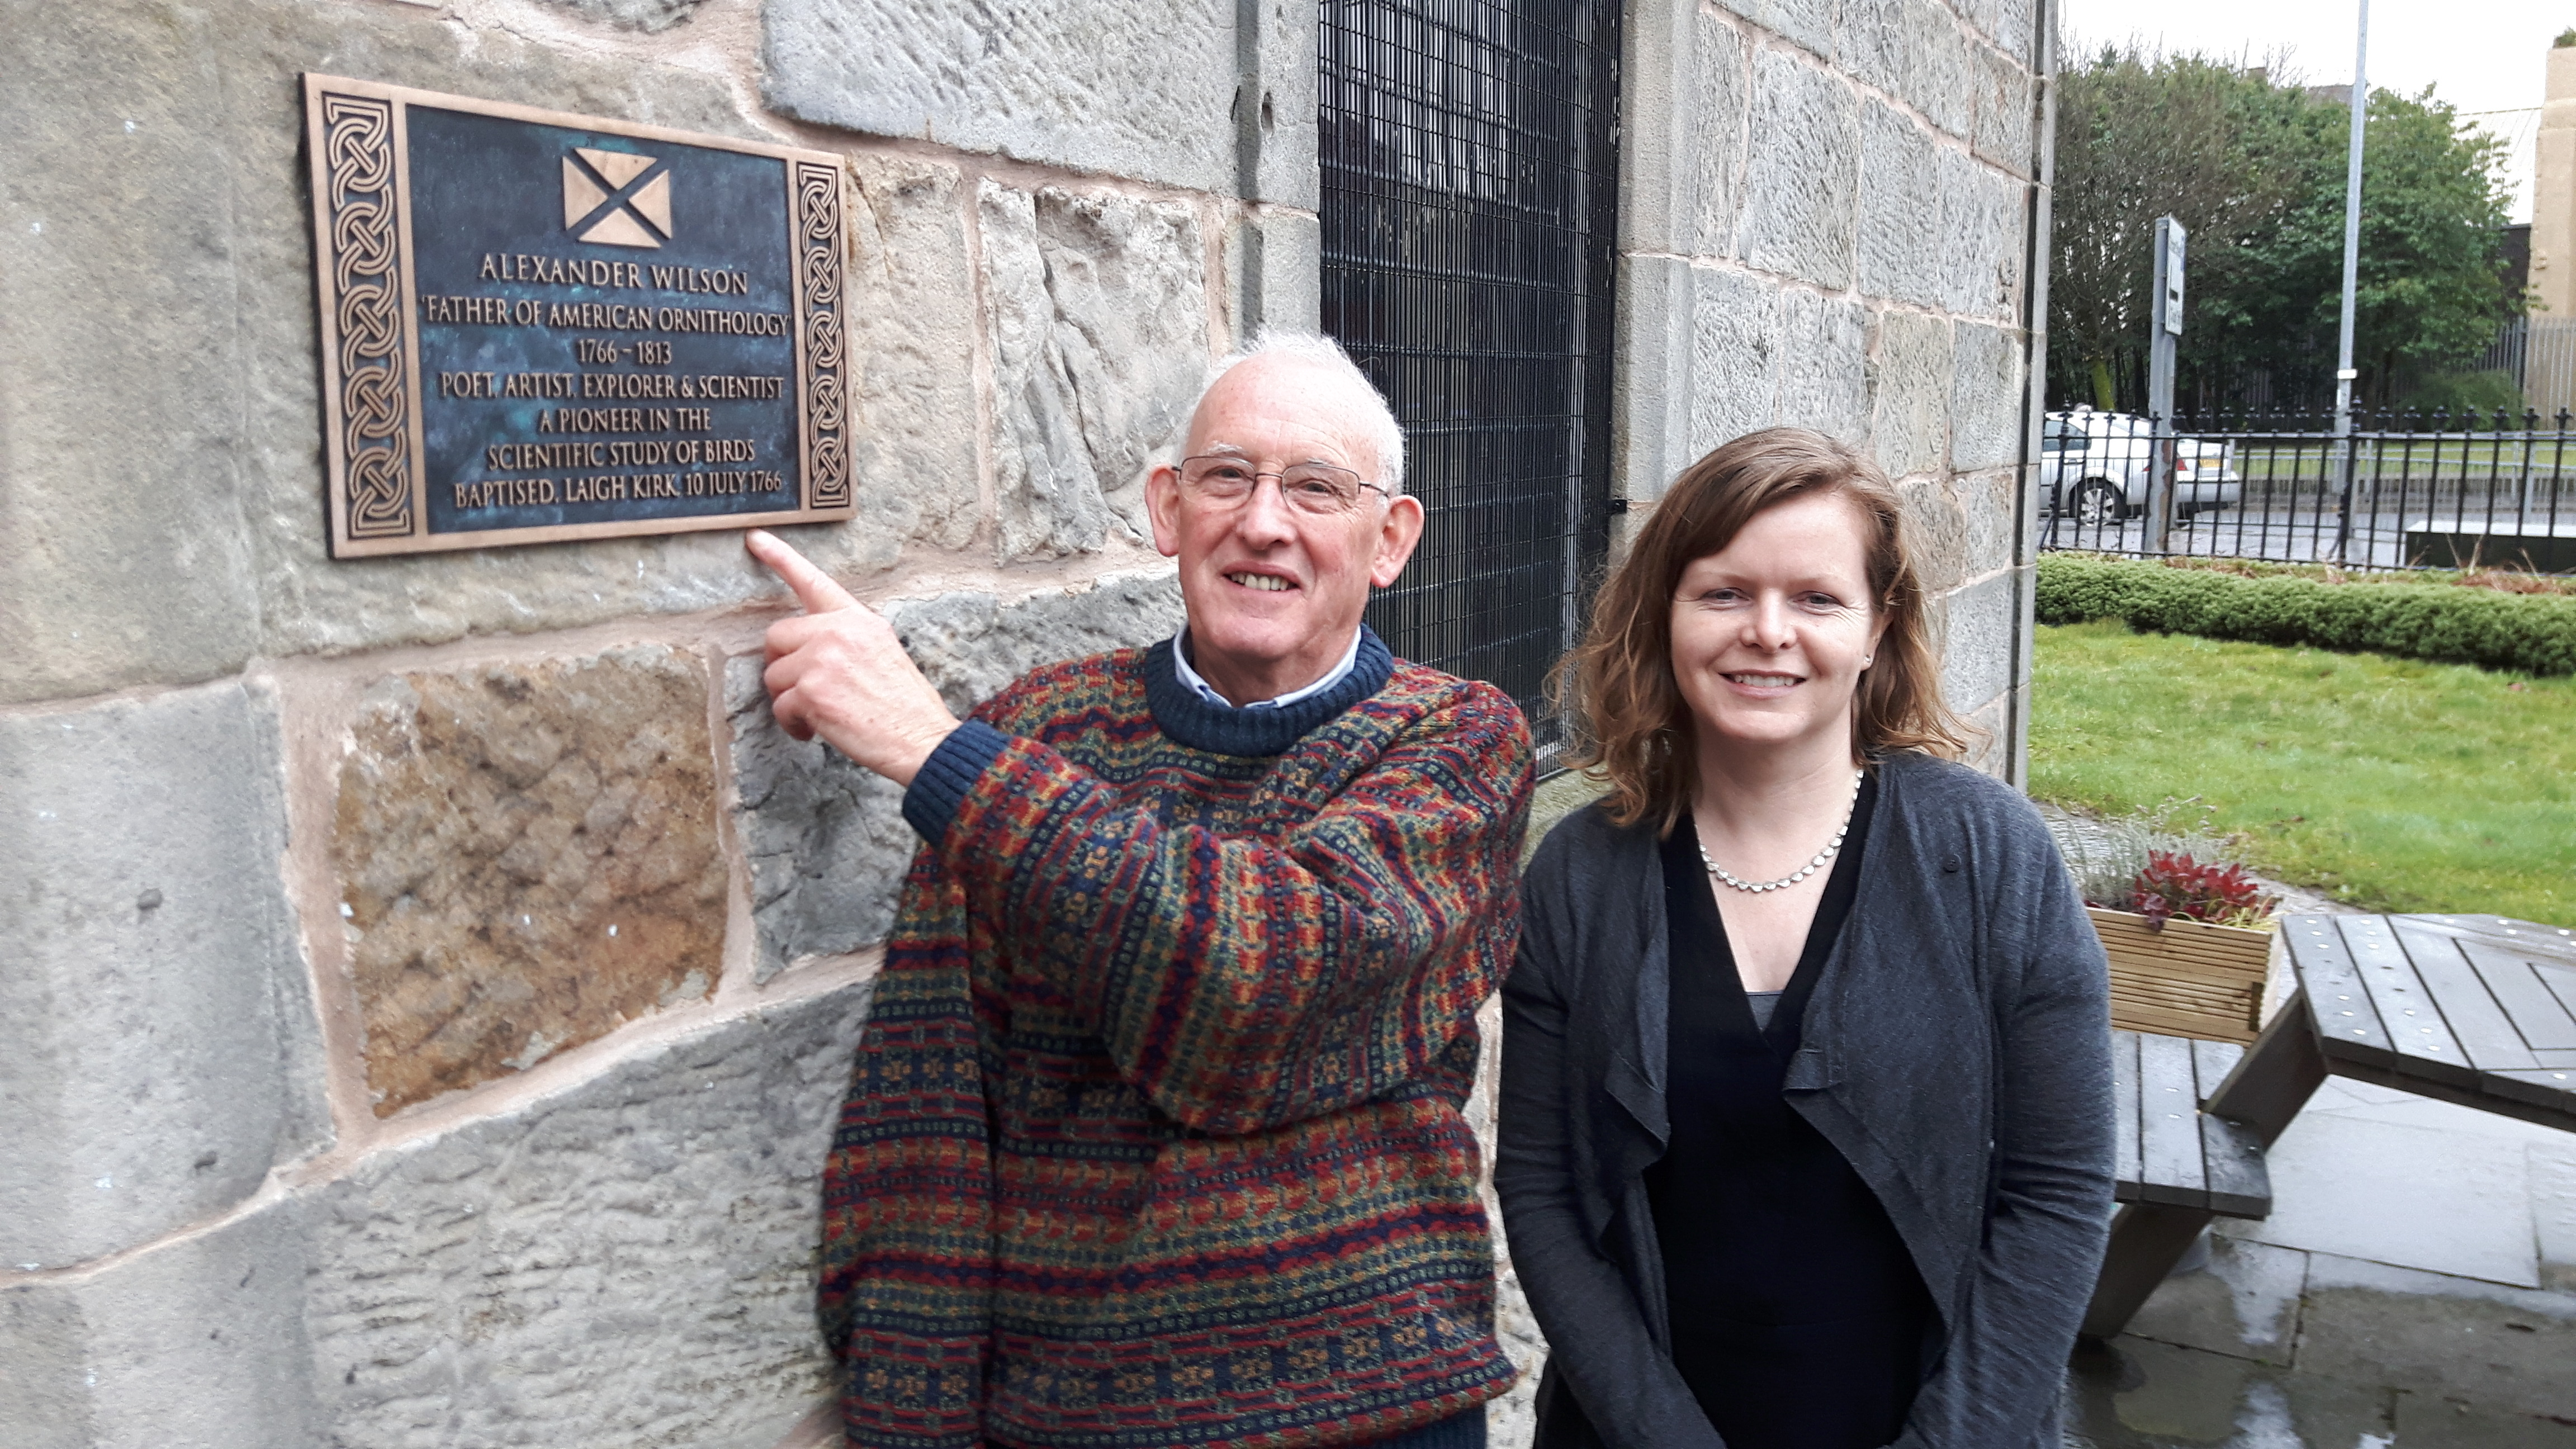 Plaque to honour life of Alexander Wilson unveiled in Paisley